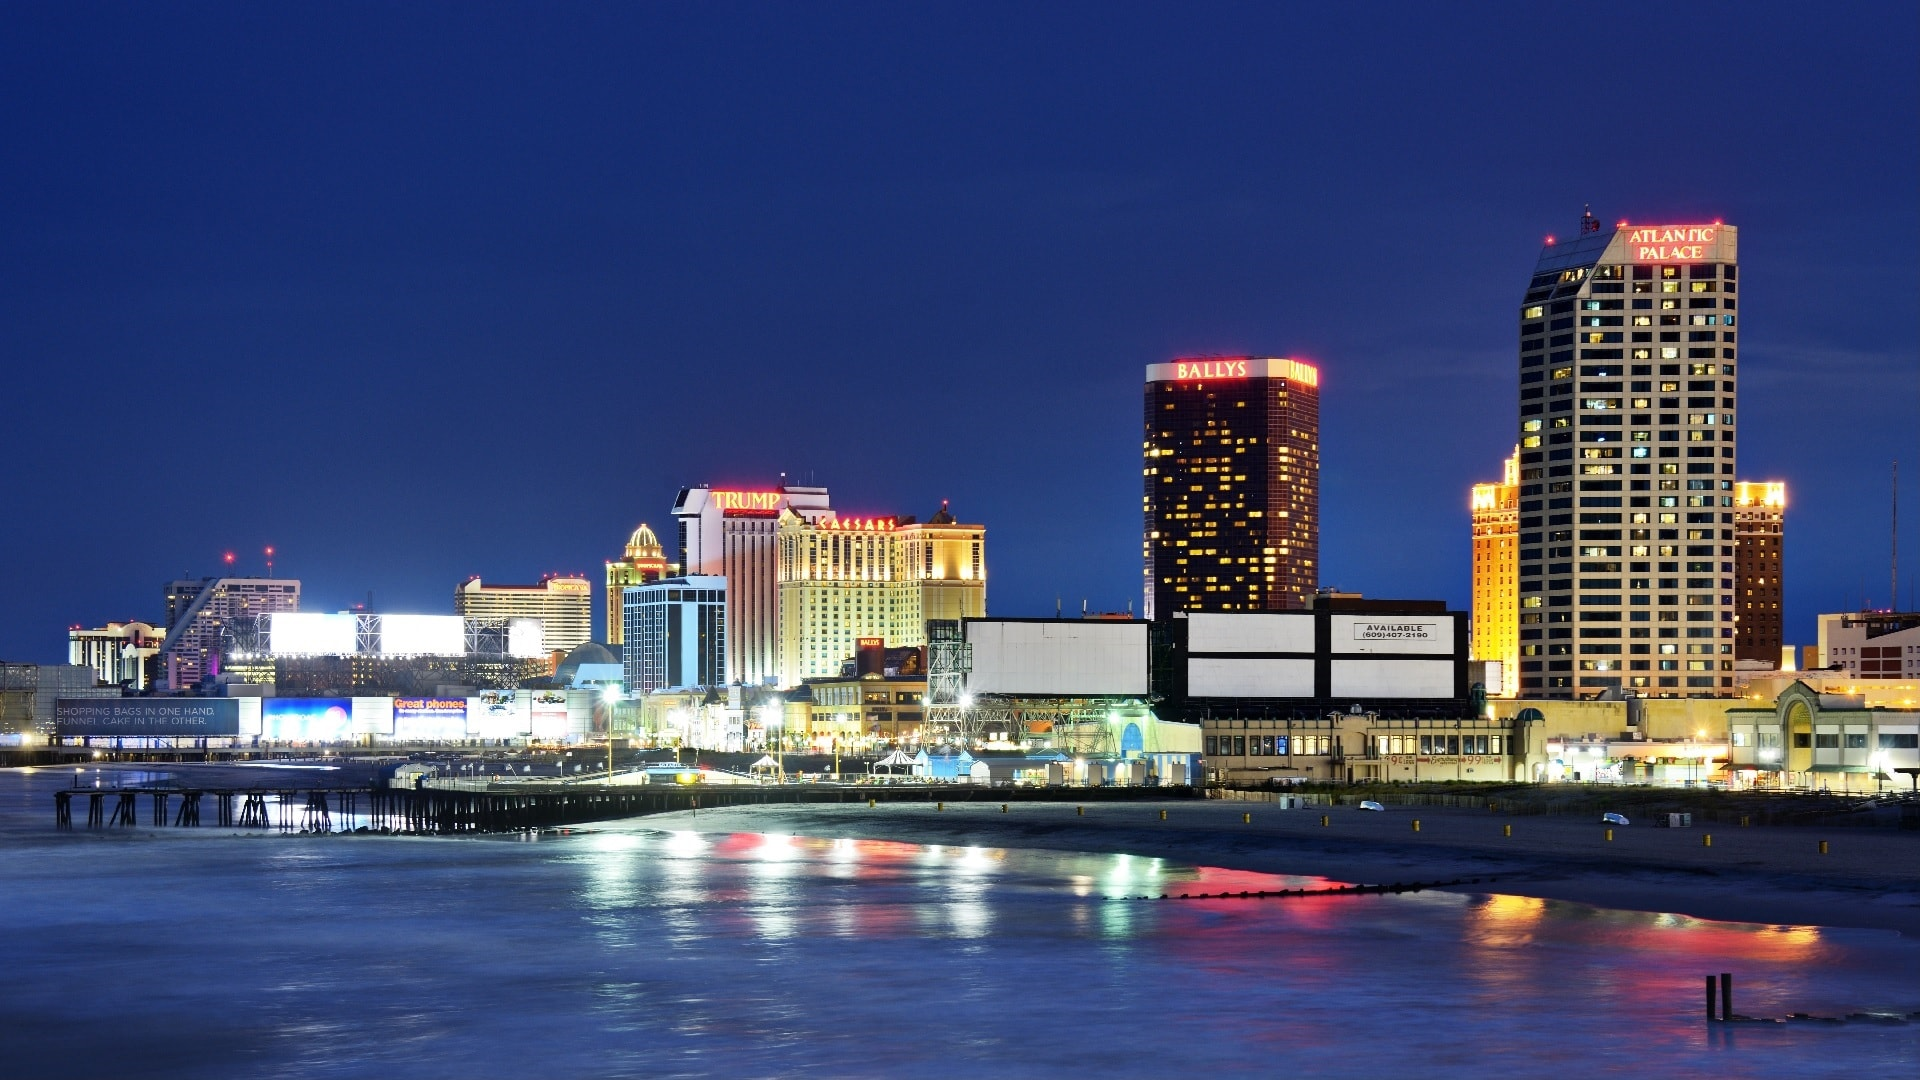 Atlantic City widescreen wallpapers